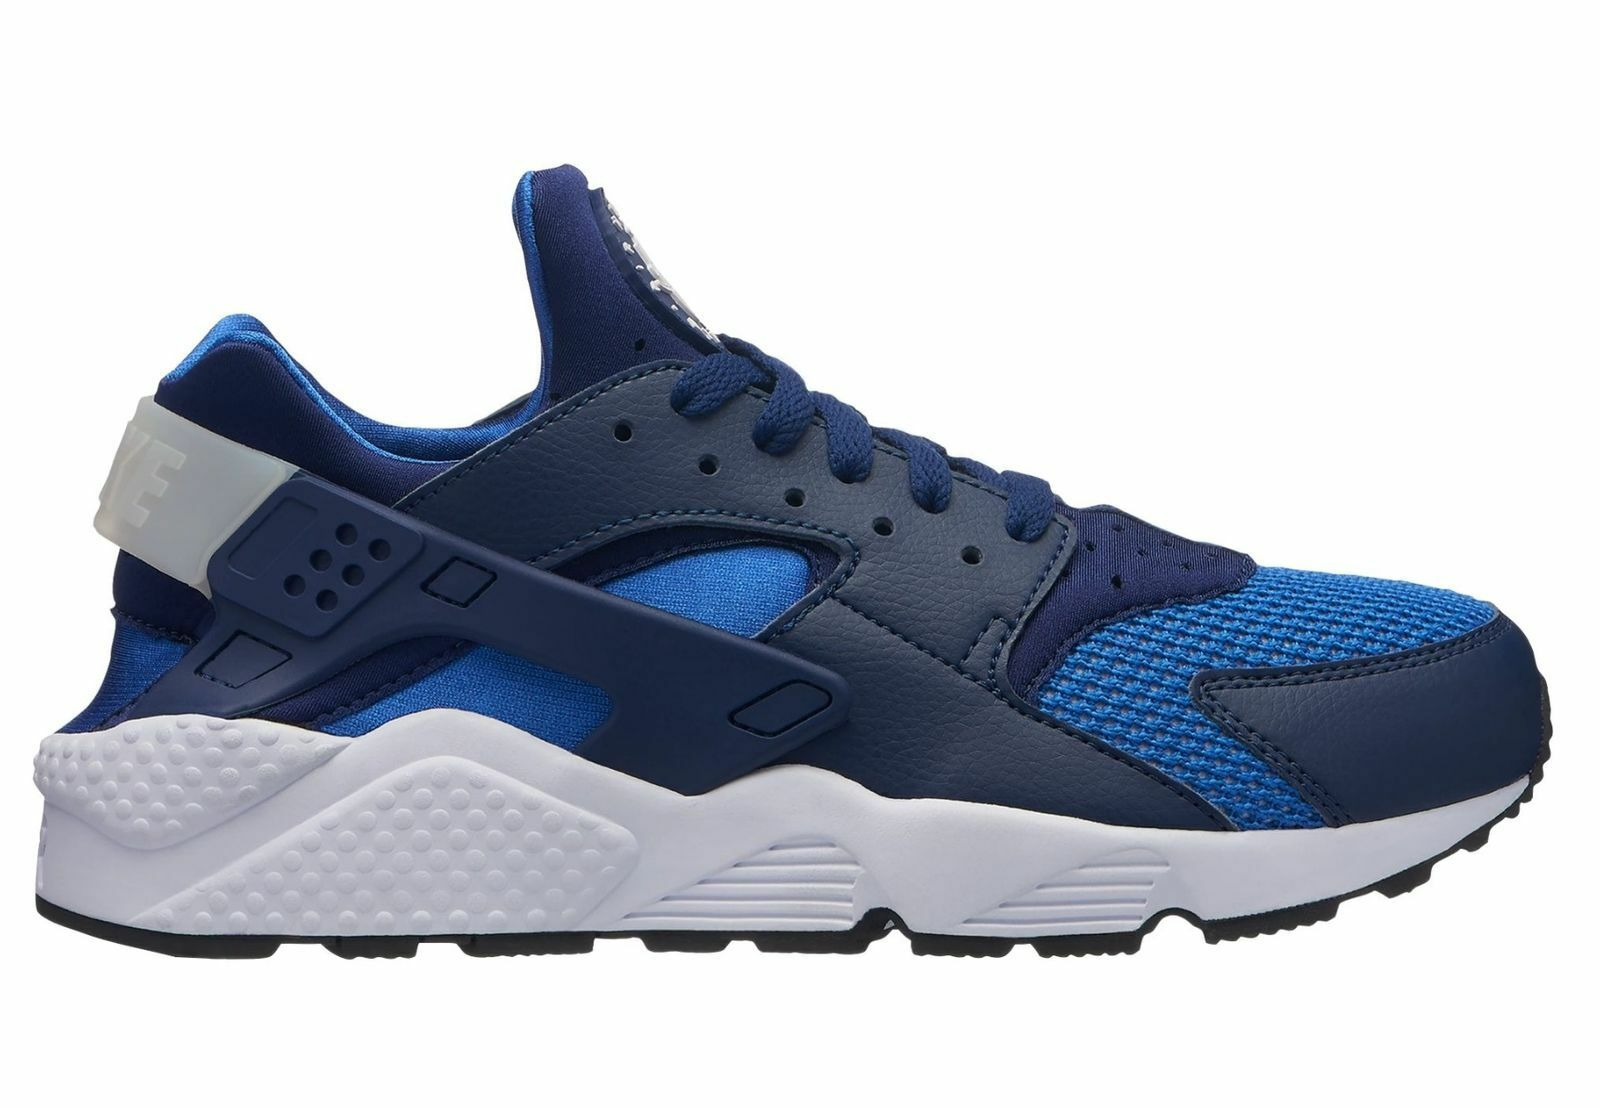 Wild casual shoes New Nike Men's Air Huarache Running Shoes Price reduction Blue Void//White/Gm Royal